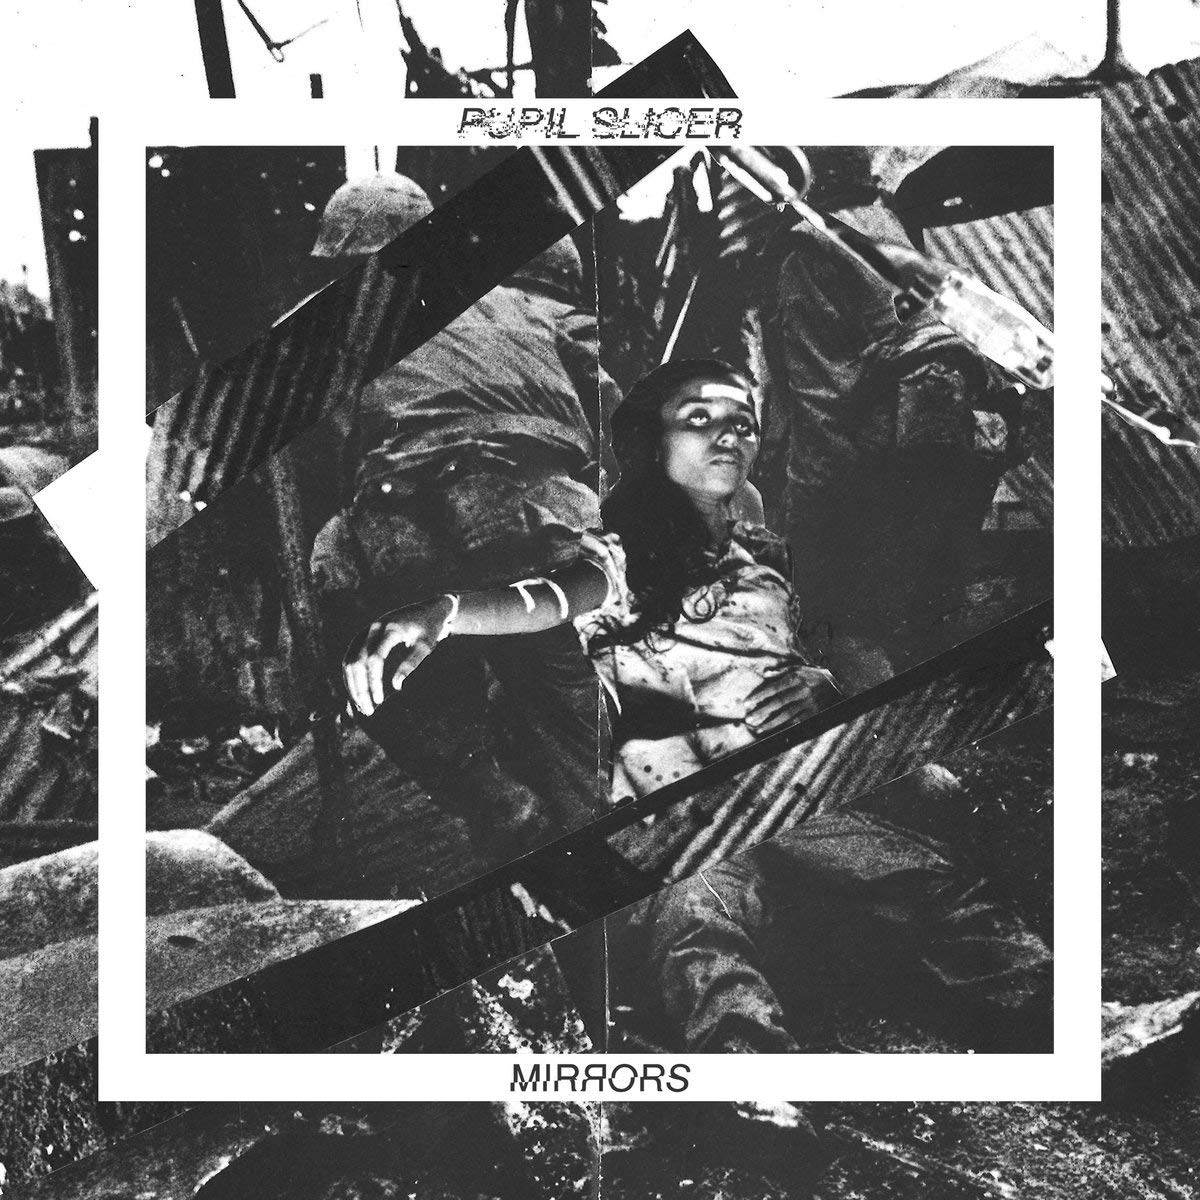 Pupil Slicer - Mirrors (2021) [FLAC] Download